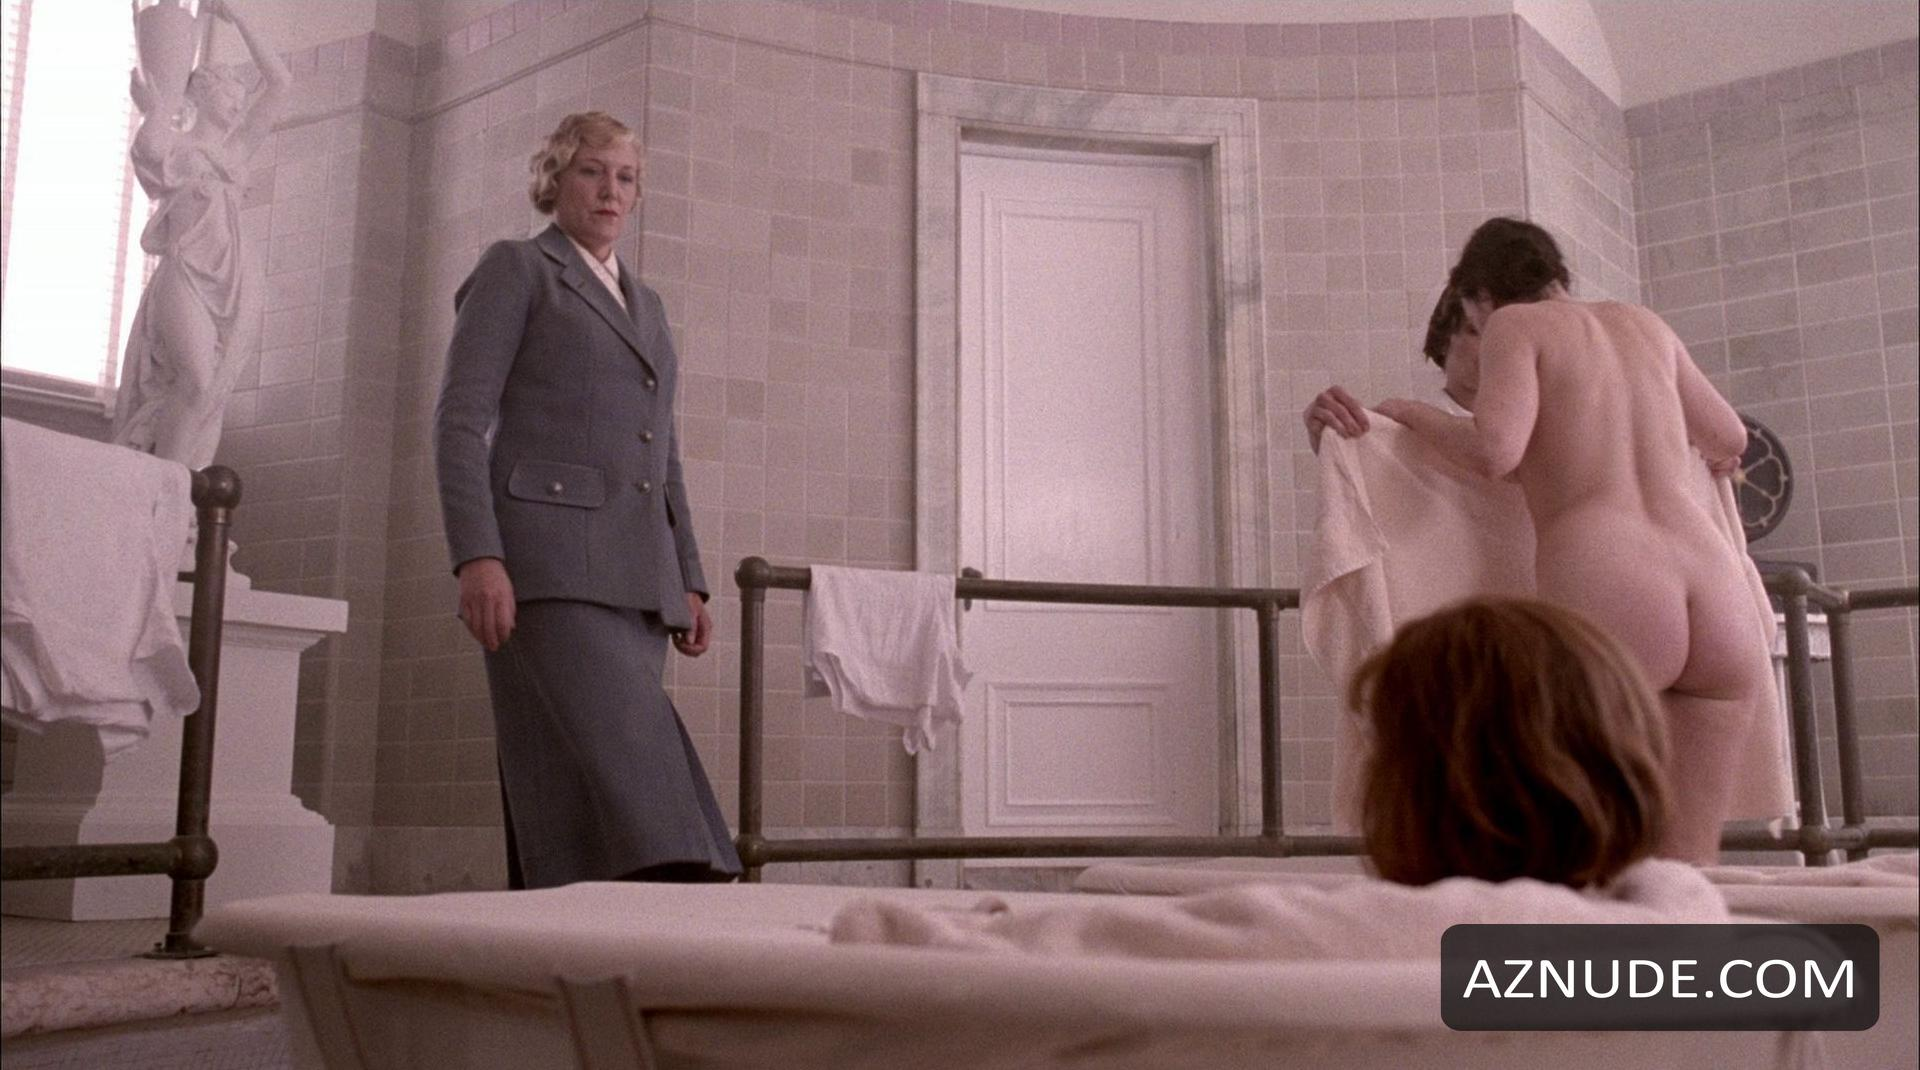 Gretchen mol erica fae bethany kay in boardwalk empire 2 - 3 part 9